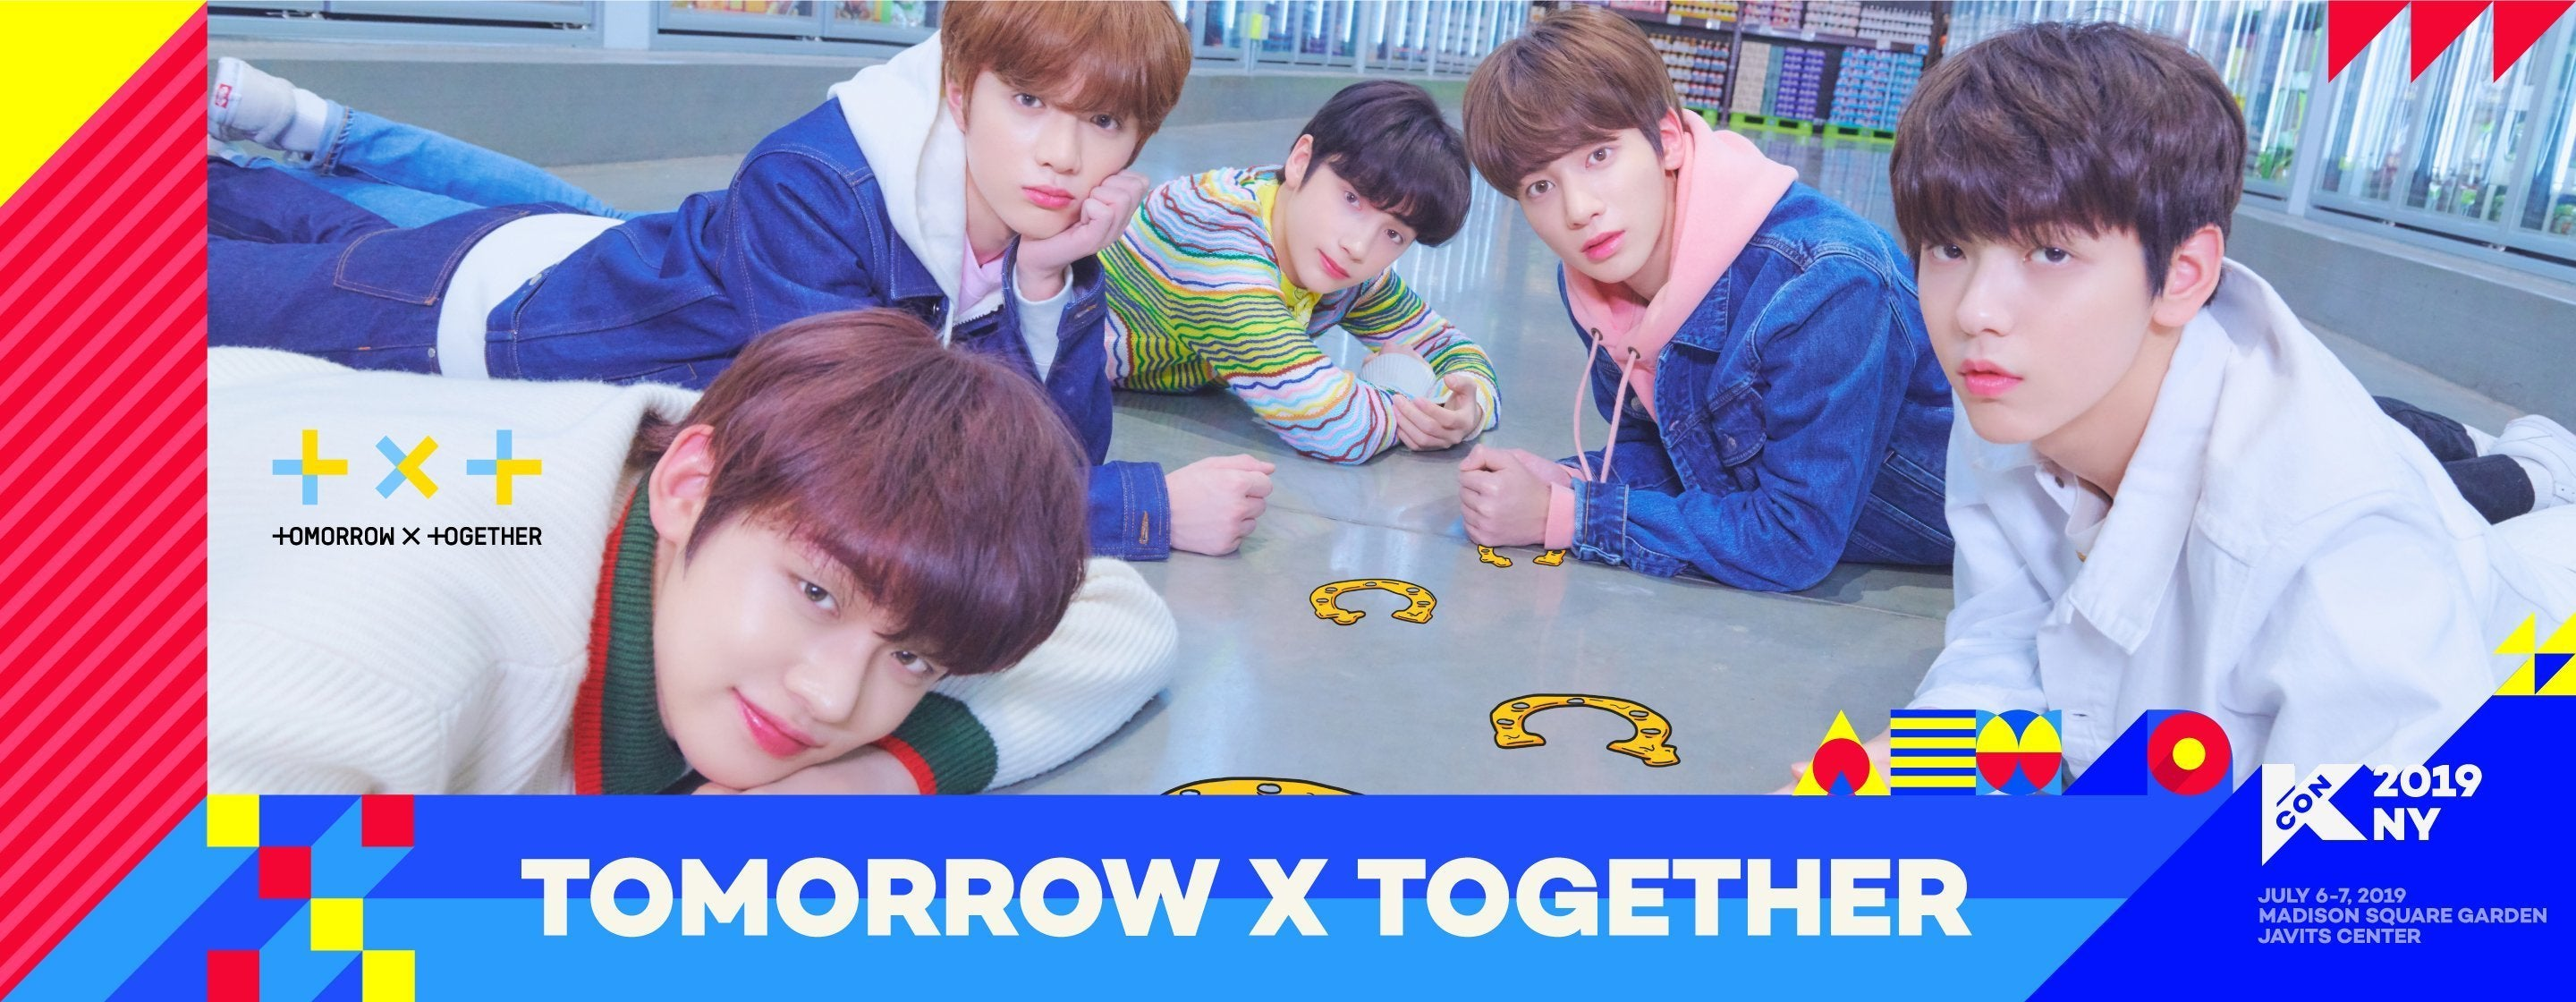 TXT and NU'EST to Attend KCON NY